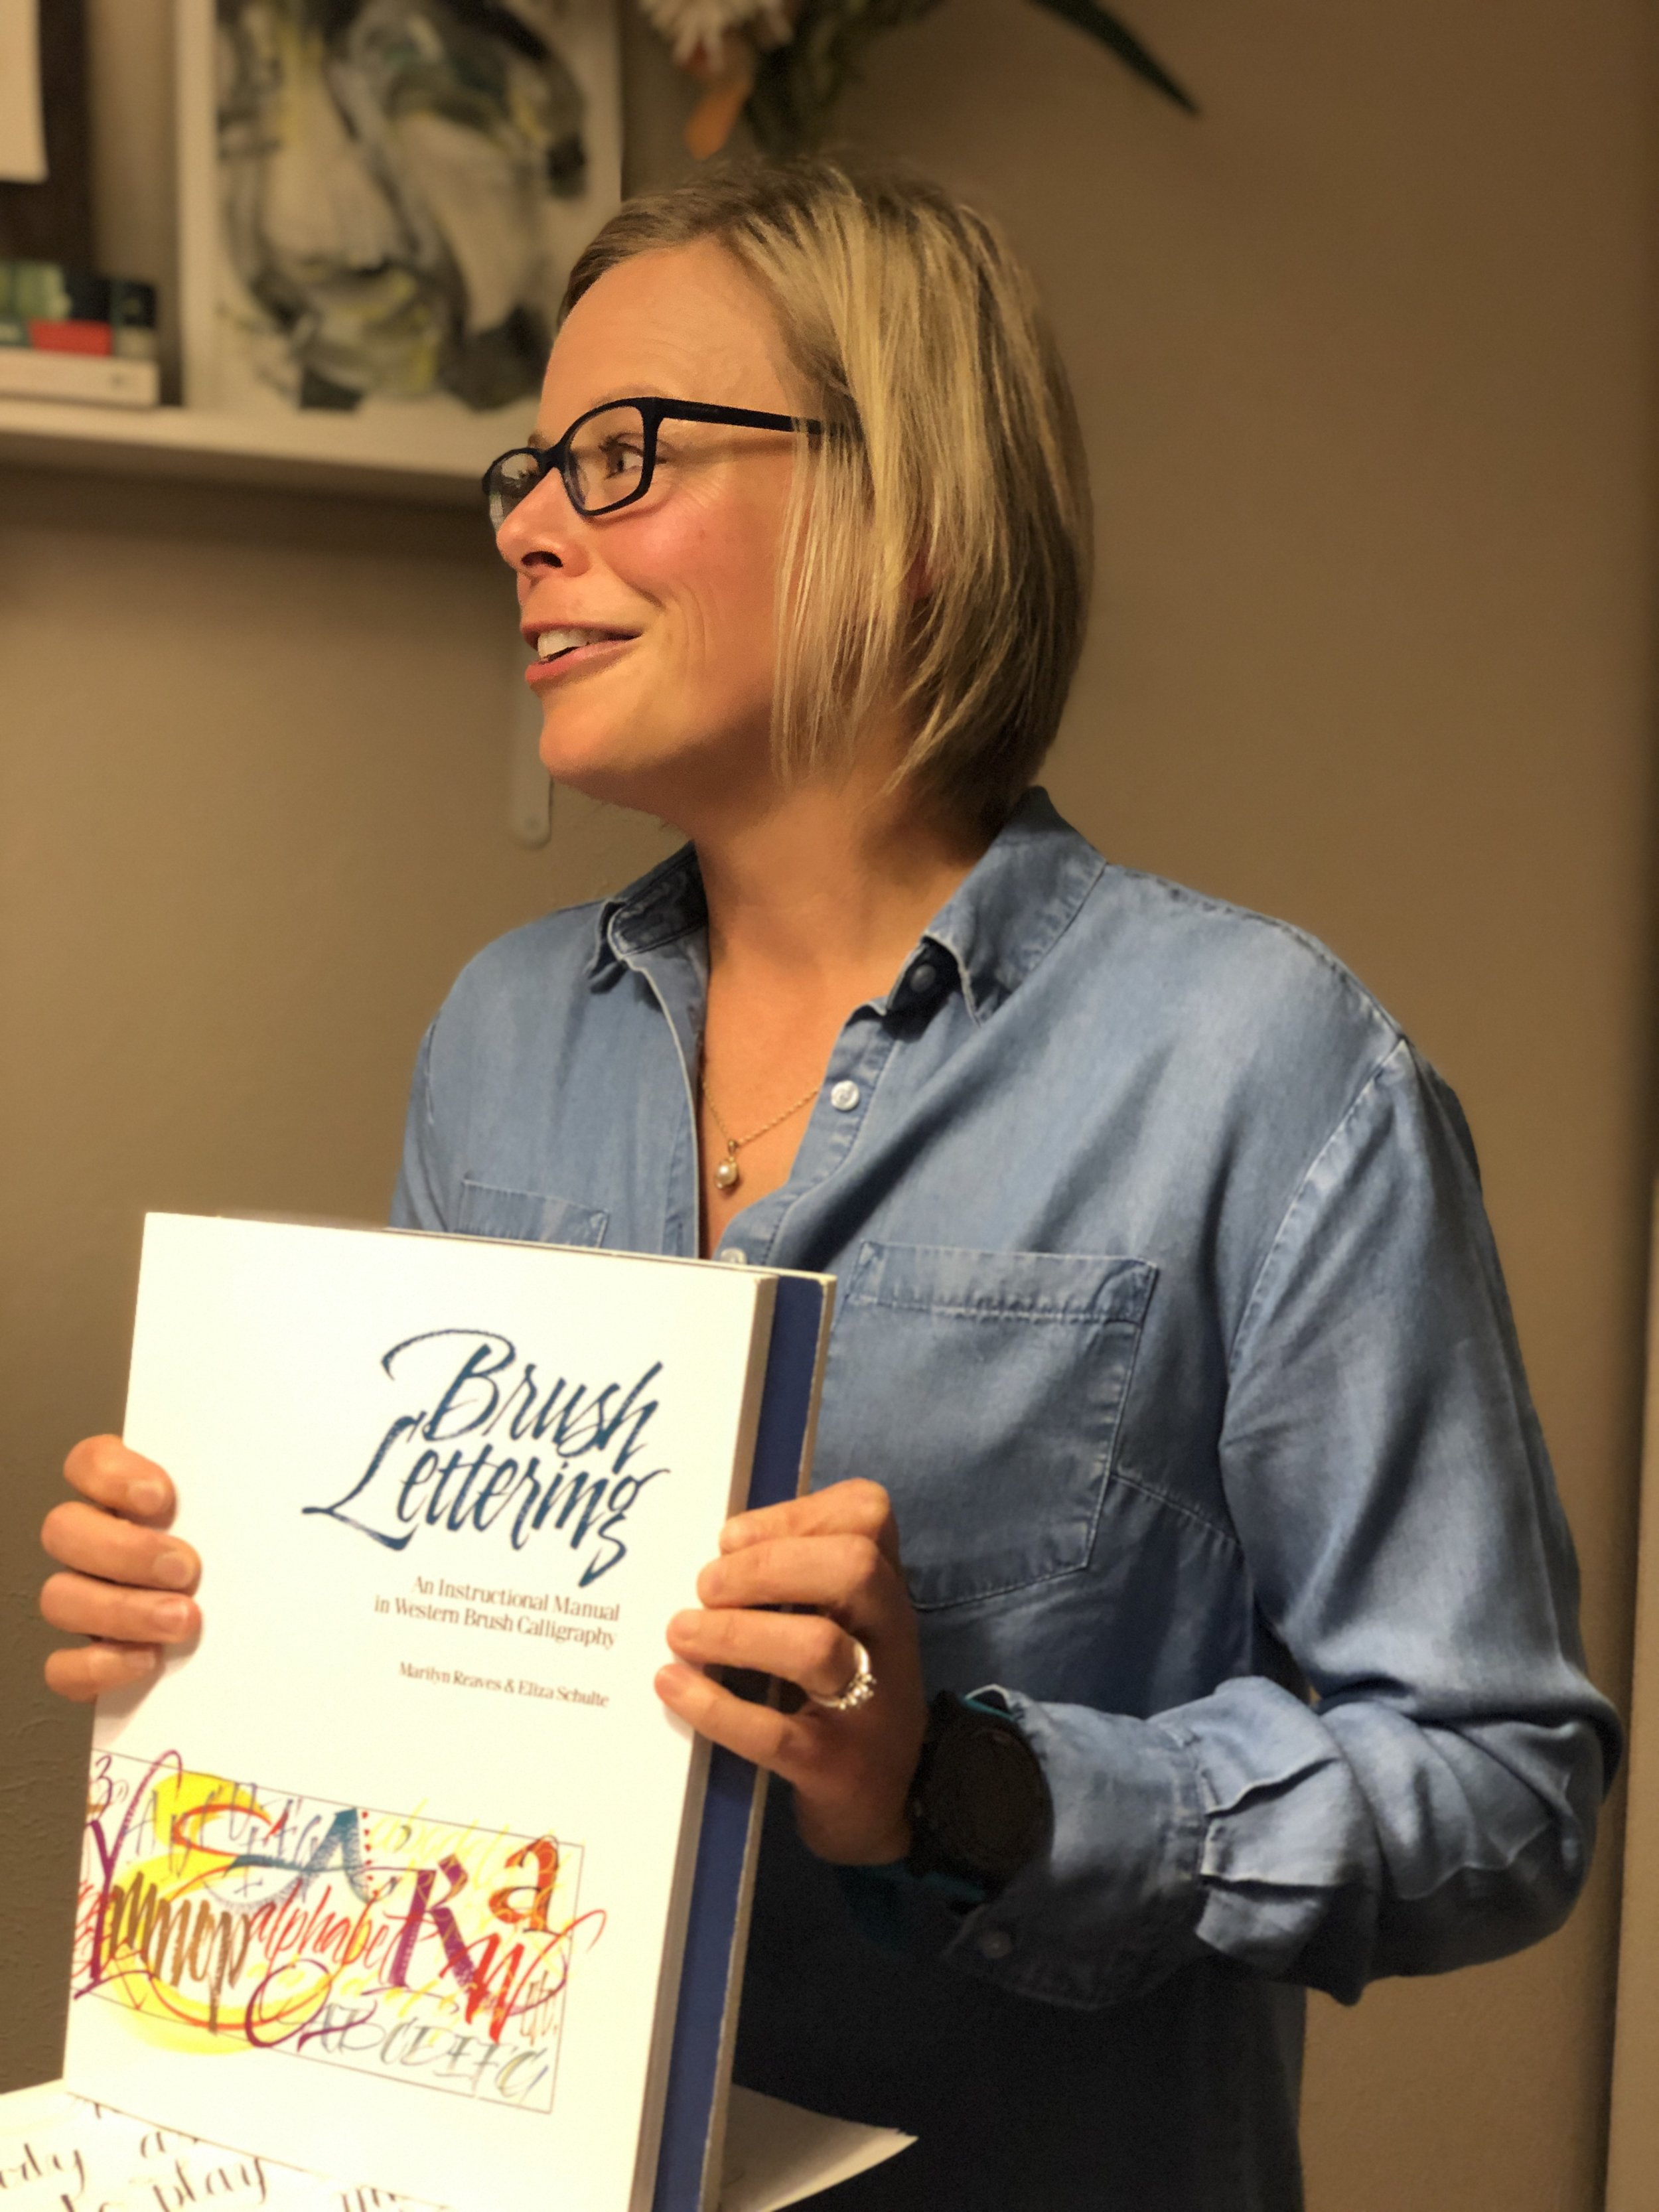 Michelle wearing a jean shirt, blonde hair, blue glasses holding brush lettering book.